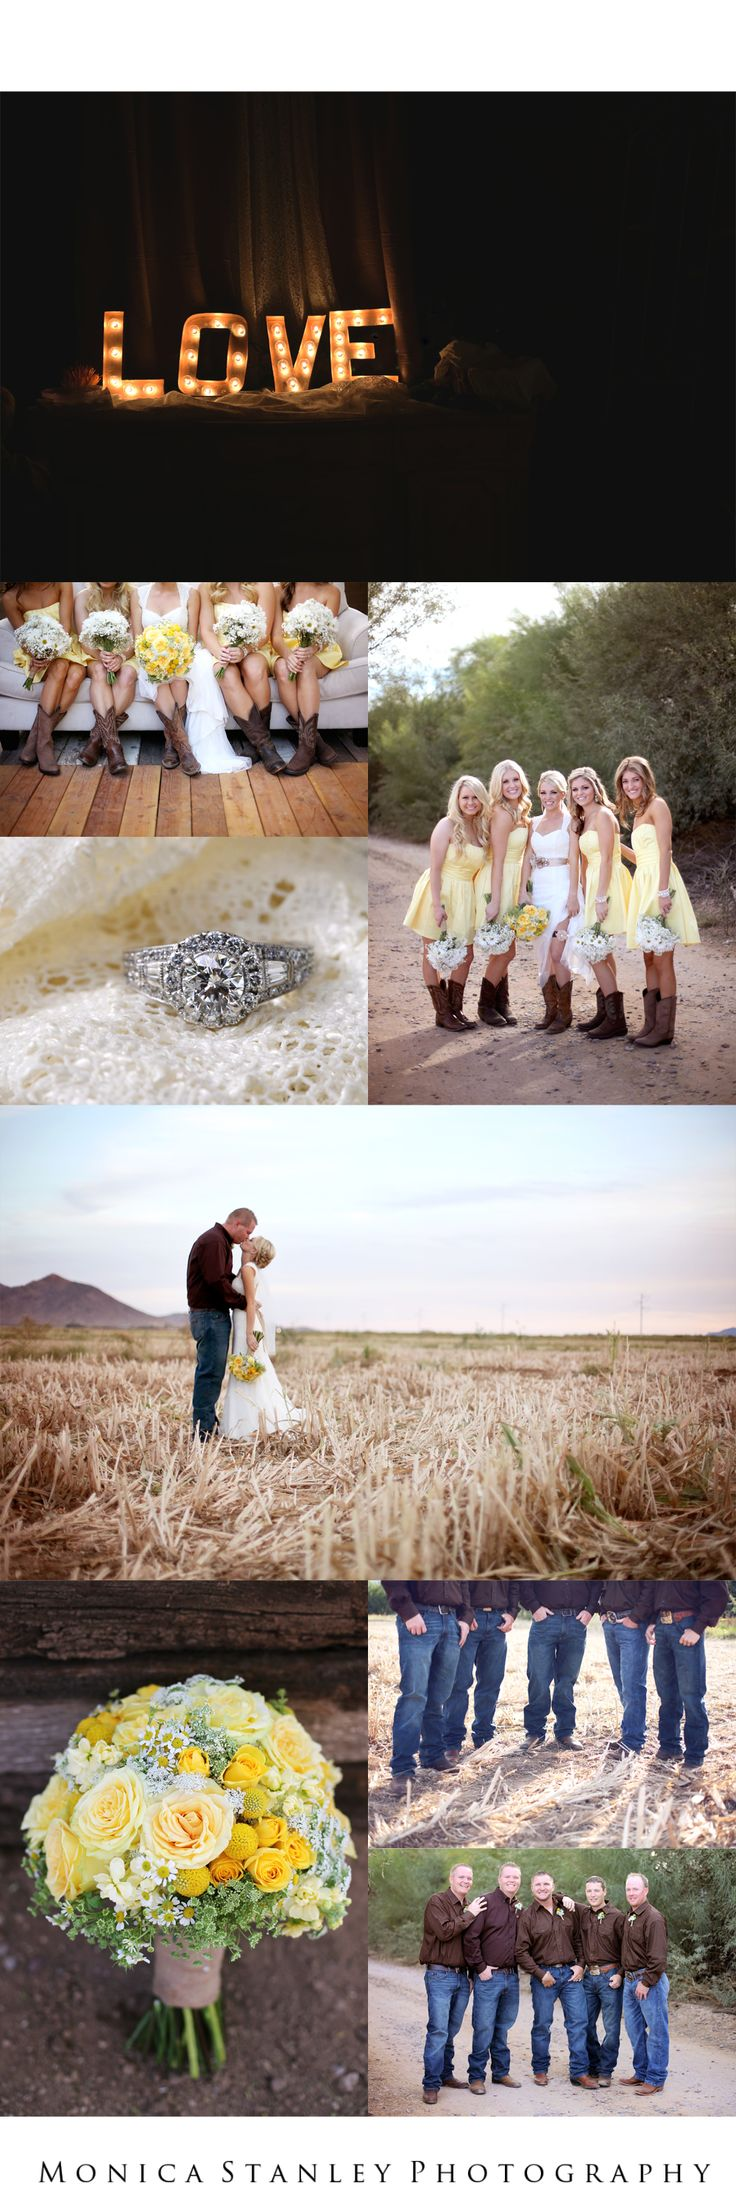 #Countrywedding #rustic For more Cute n' Country visit: www.cutencountry.com and www.facebook.com/cuteandcountry